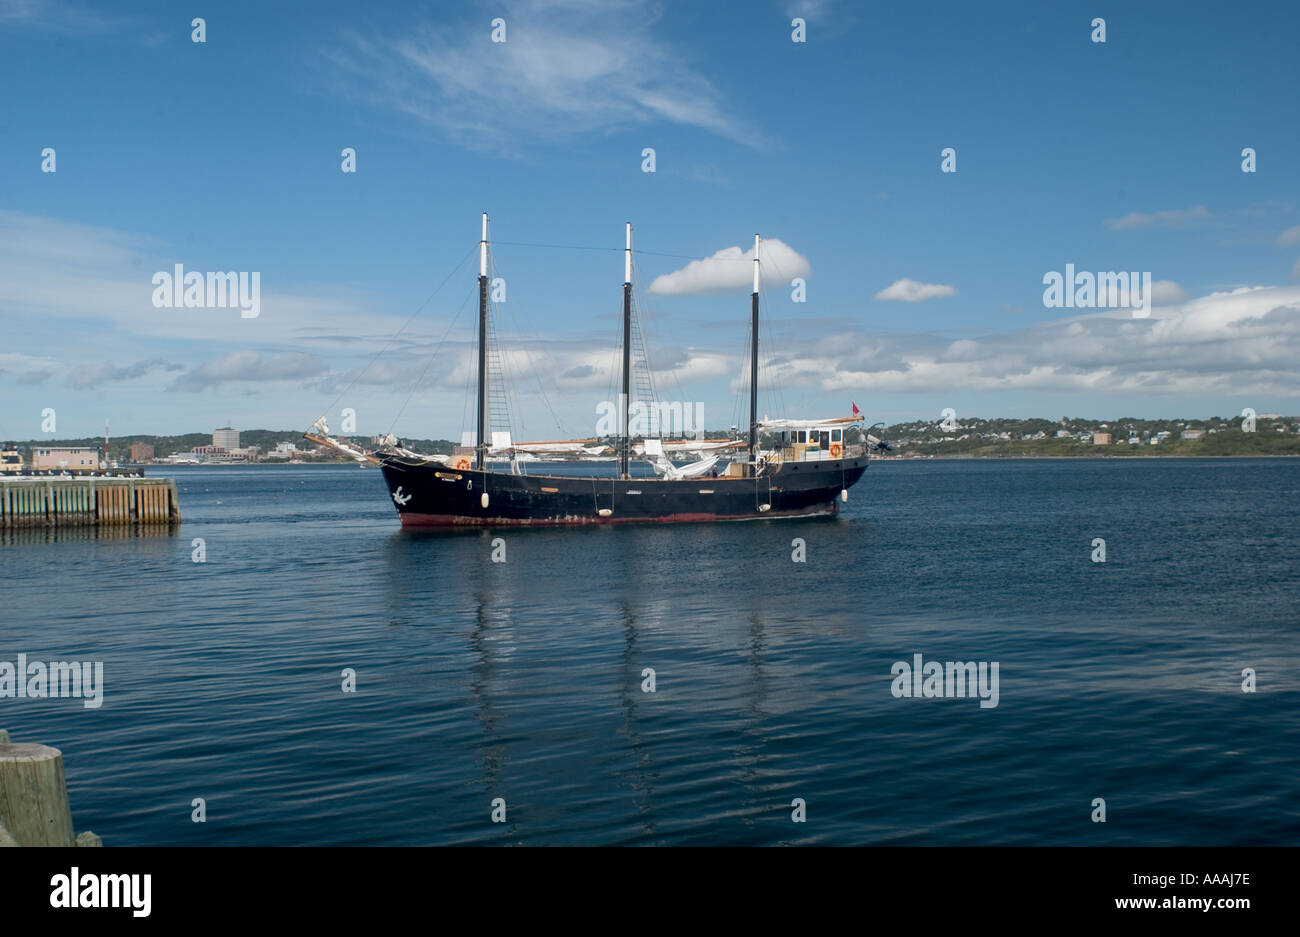 DHP99918 Pirate Boat Halifax Canada North America - Stock Image